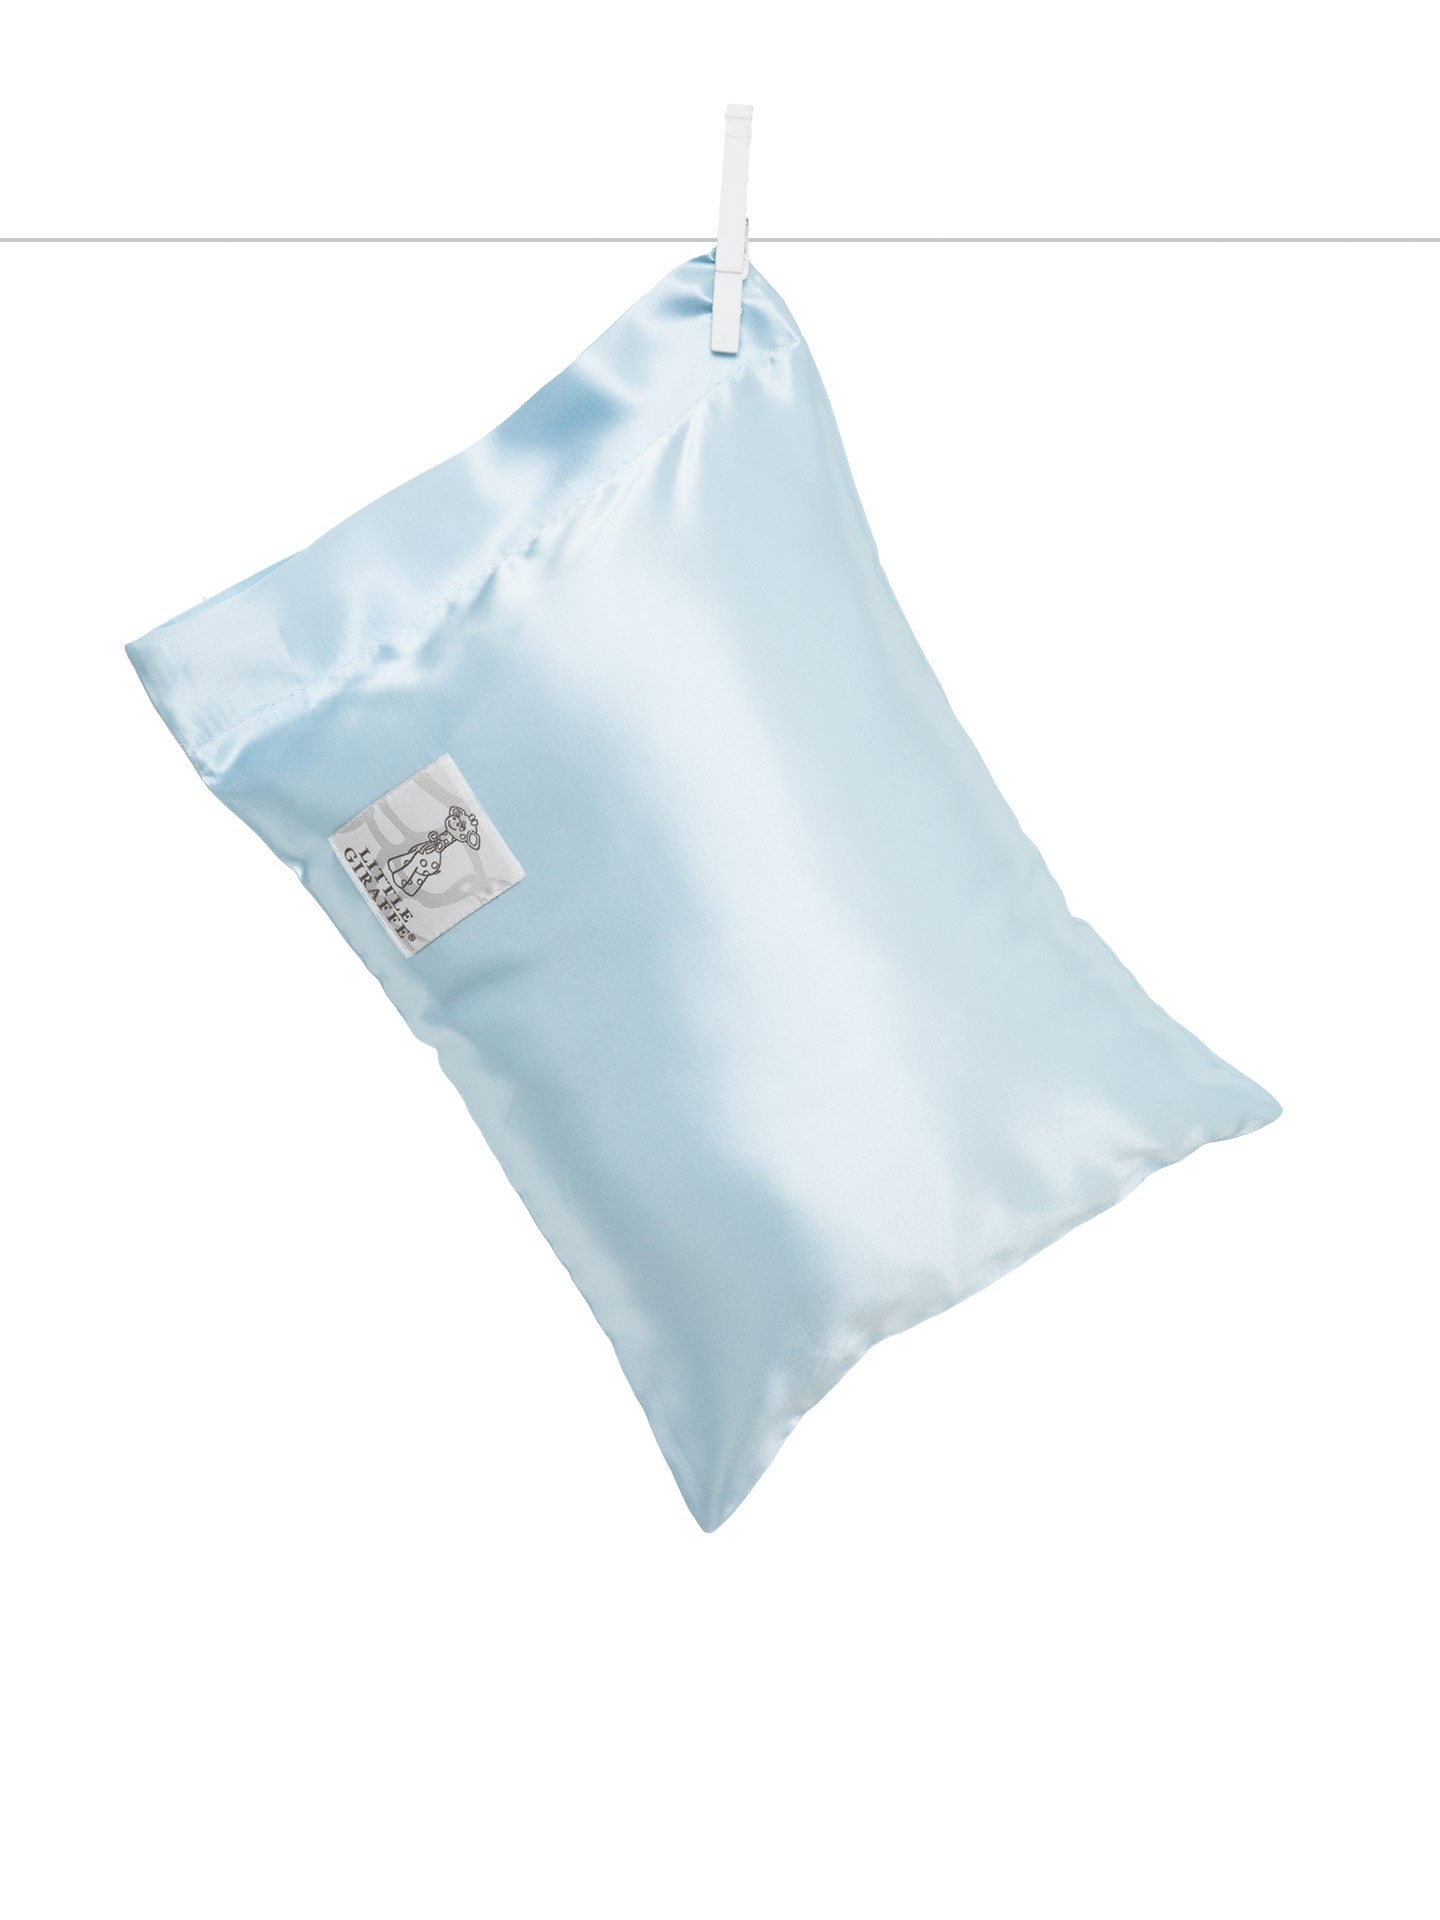 Satin Nap Pillow - More Colors Available